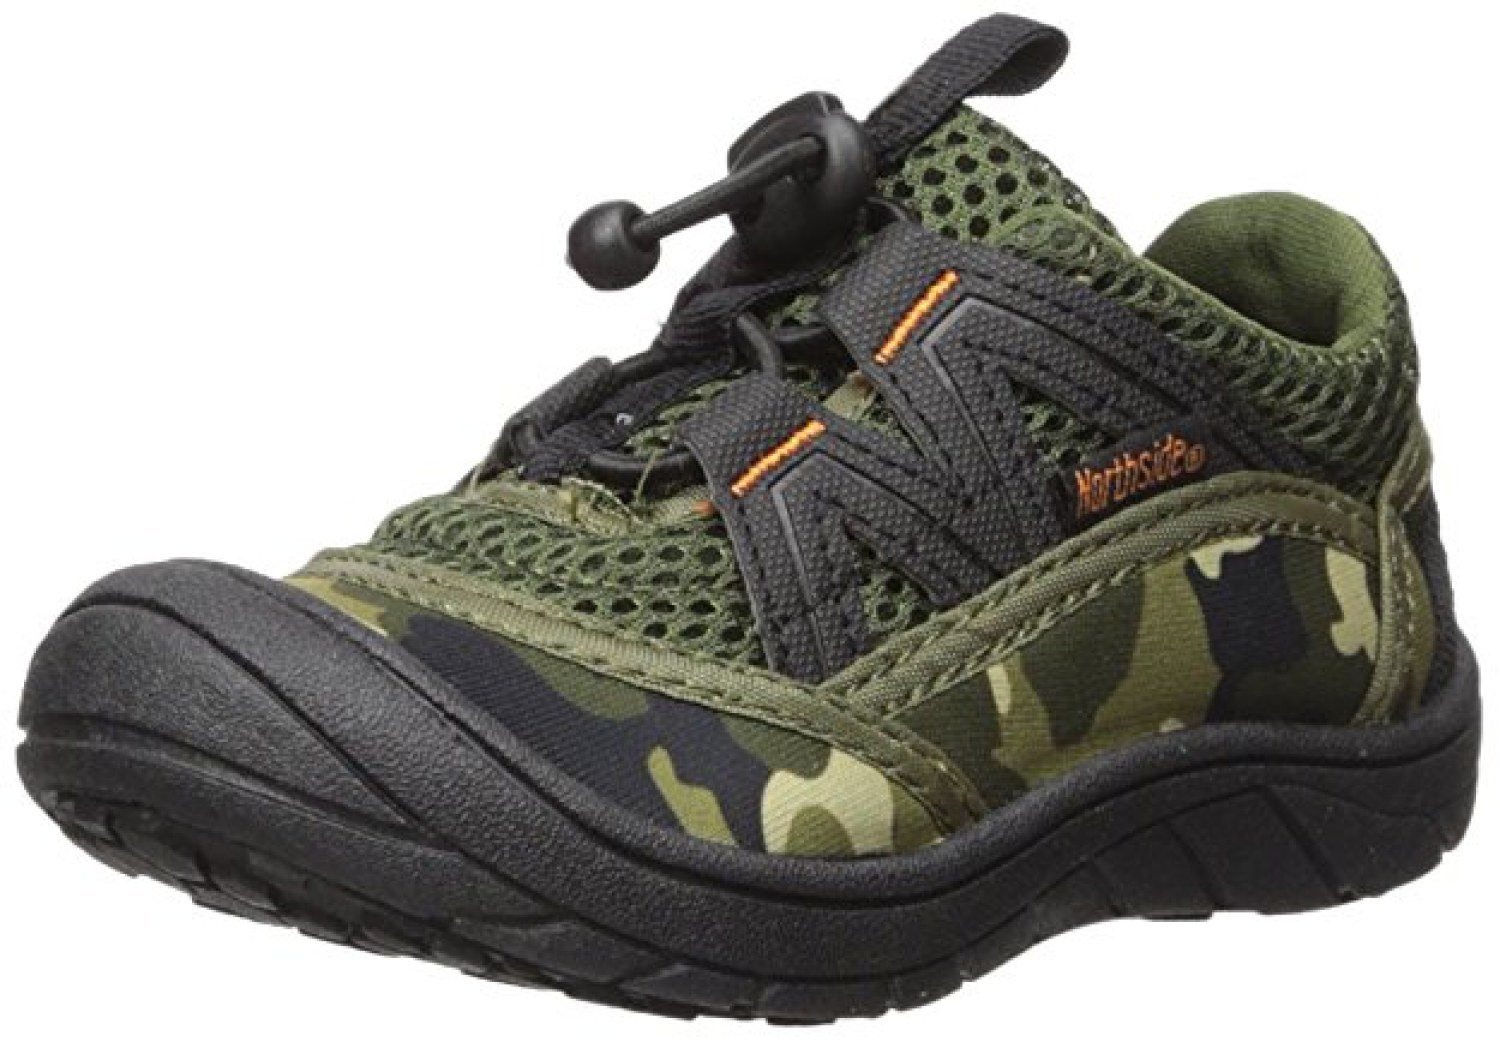 Northside Kid's Brille II Summer Water Shoe, Camo, 6 M US Toddler; with a Waterproof Wet Dry Bag